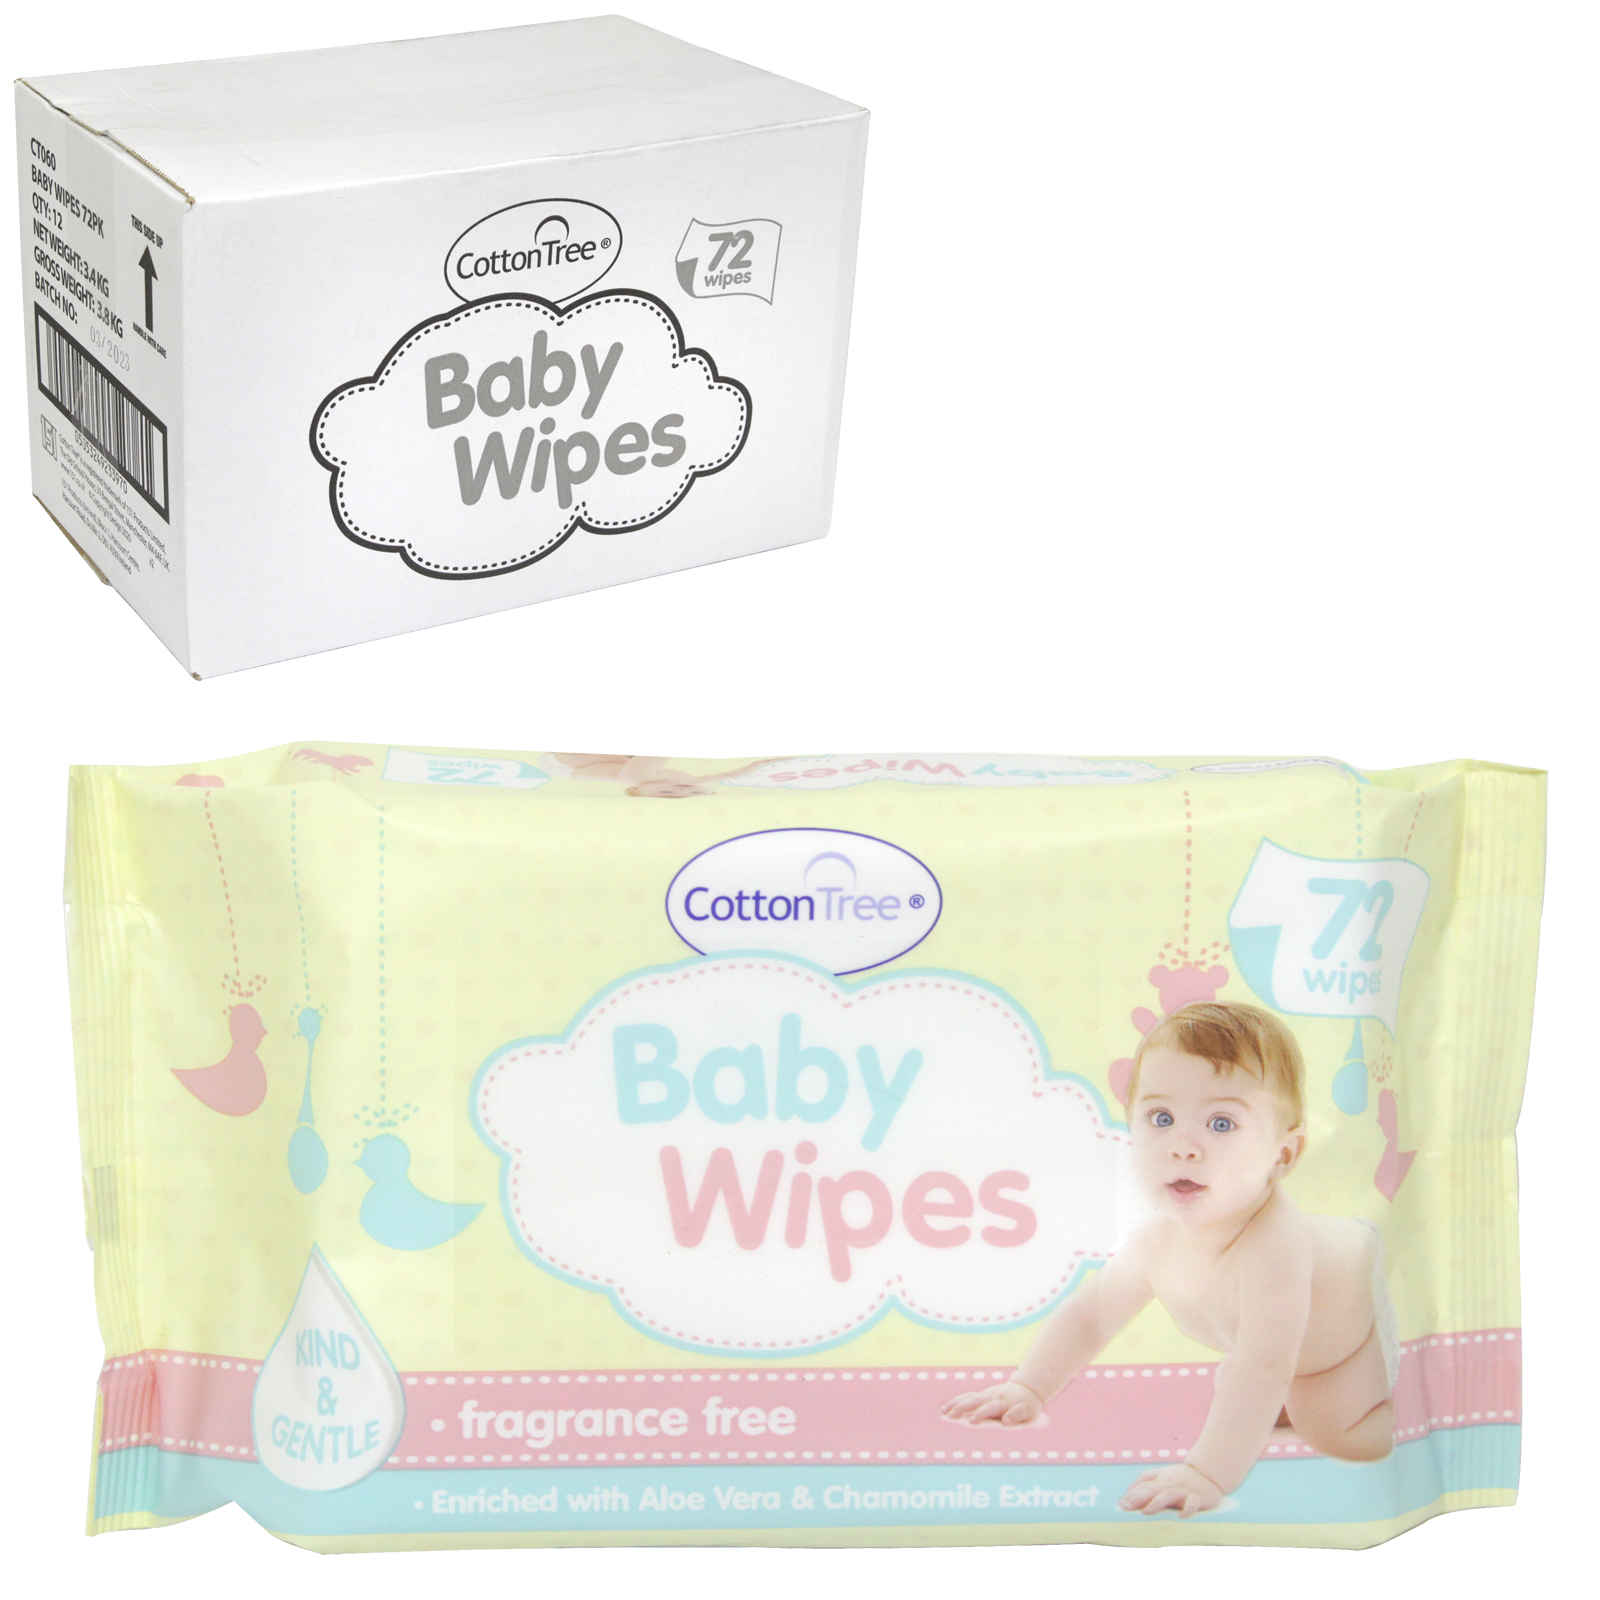 COTTON TREE 72 BABY WIPES FRAG FREE X12